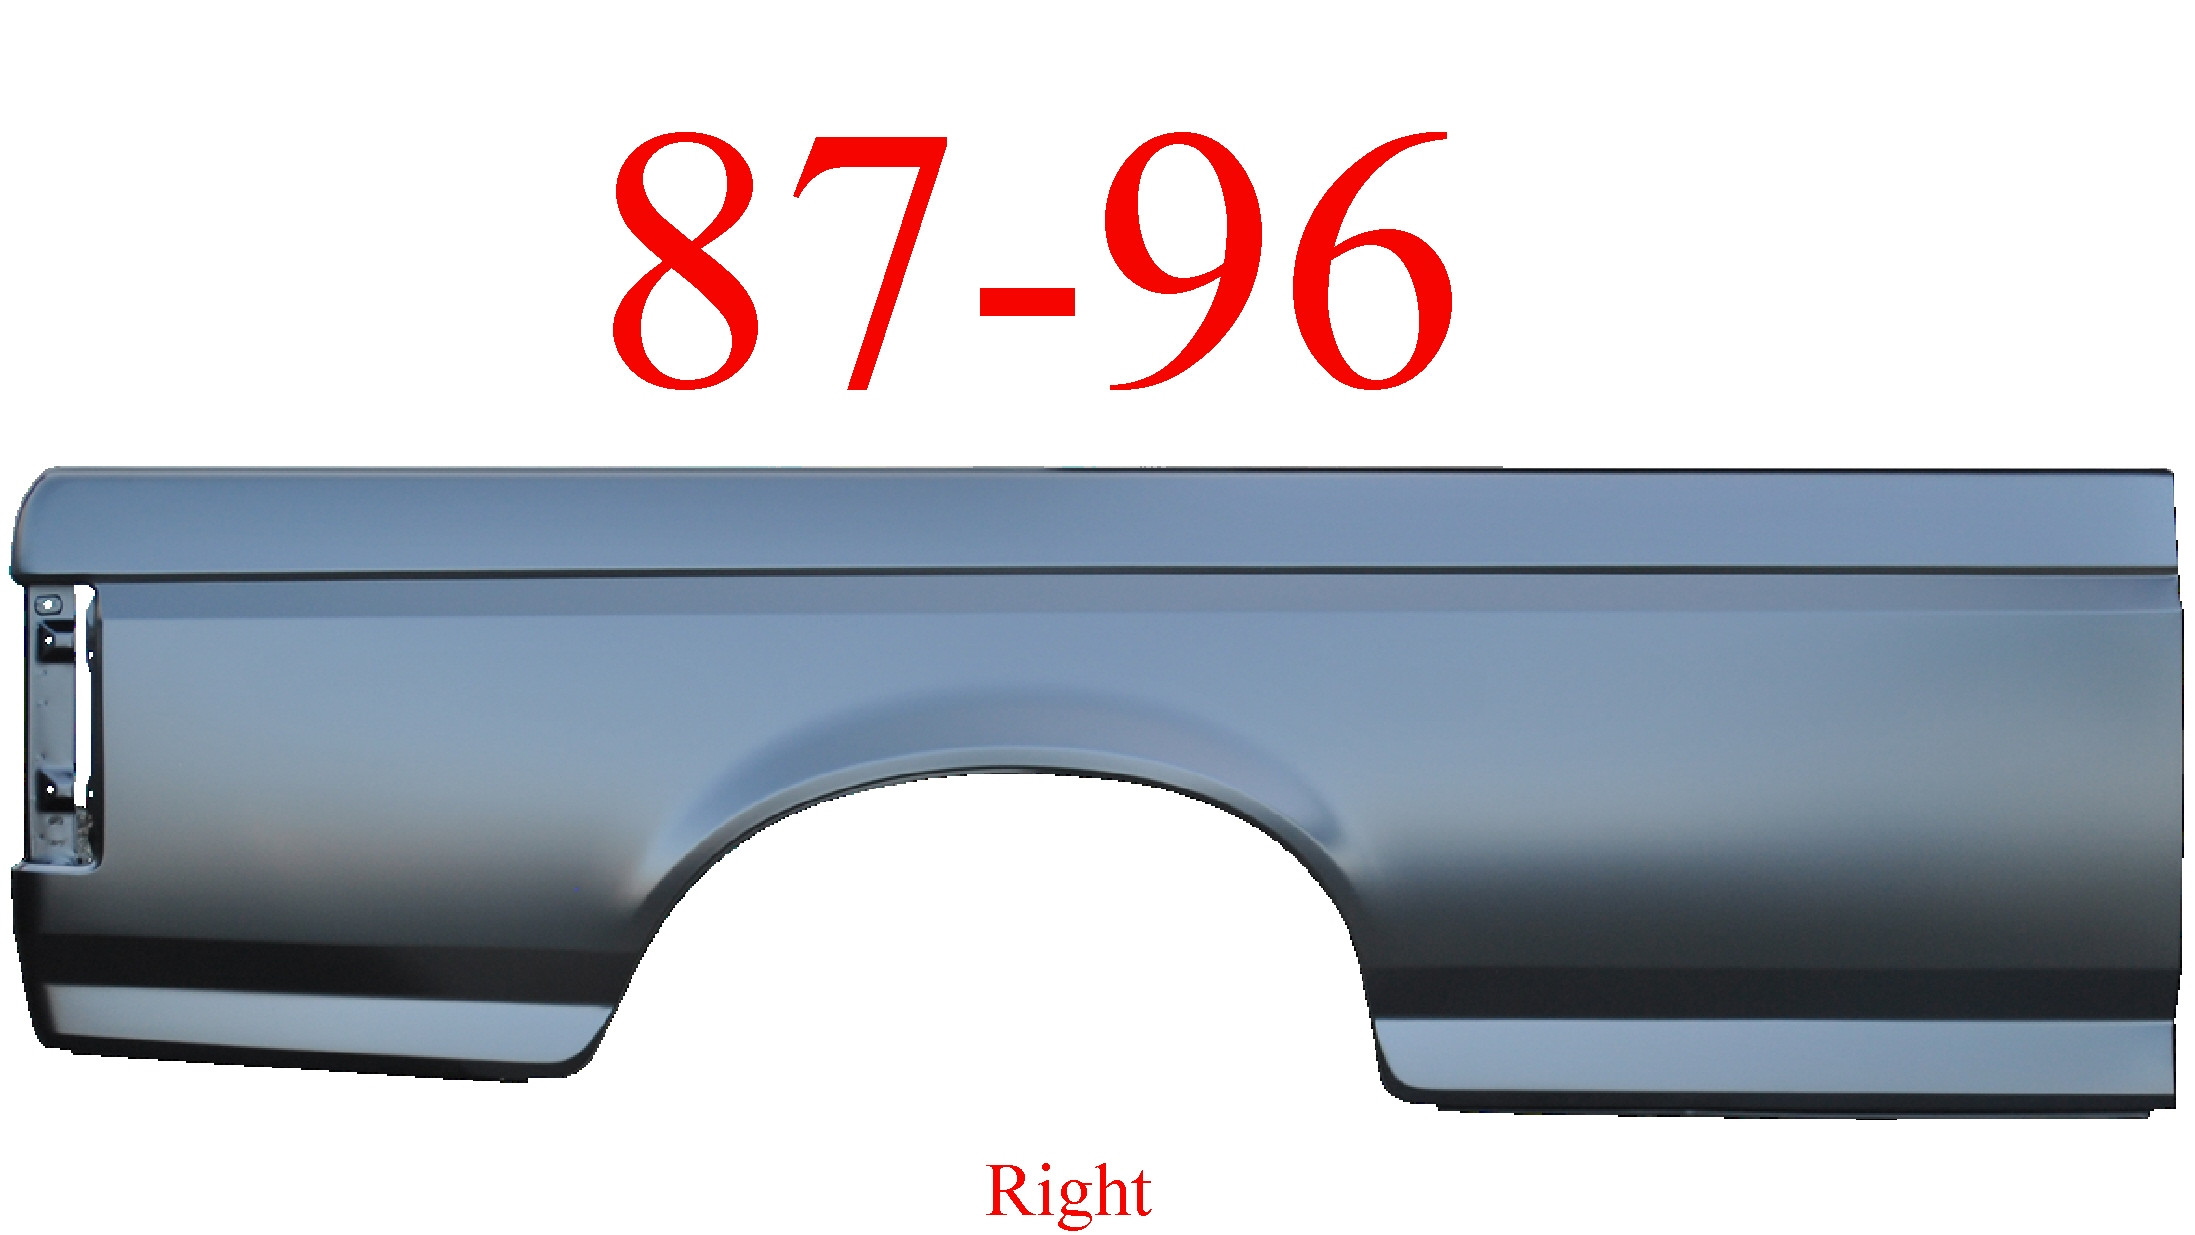 87-96 Ford Right 8' Bed Side